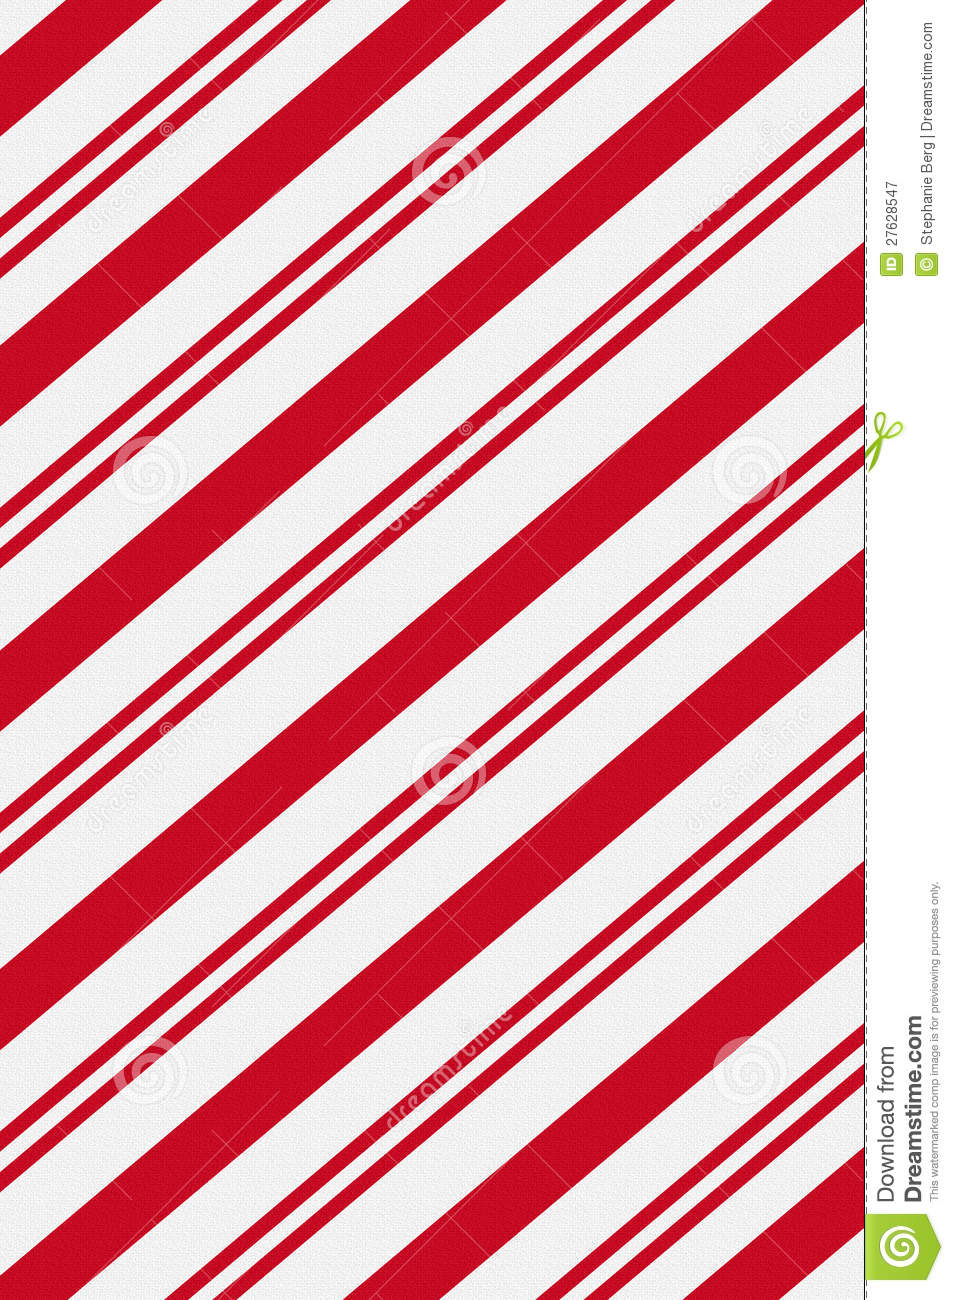 candy cane background royalty free stock photography